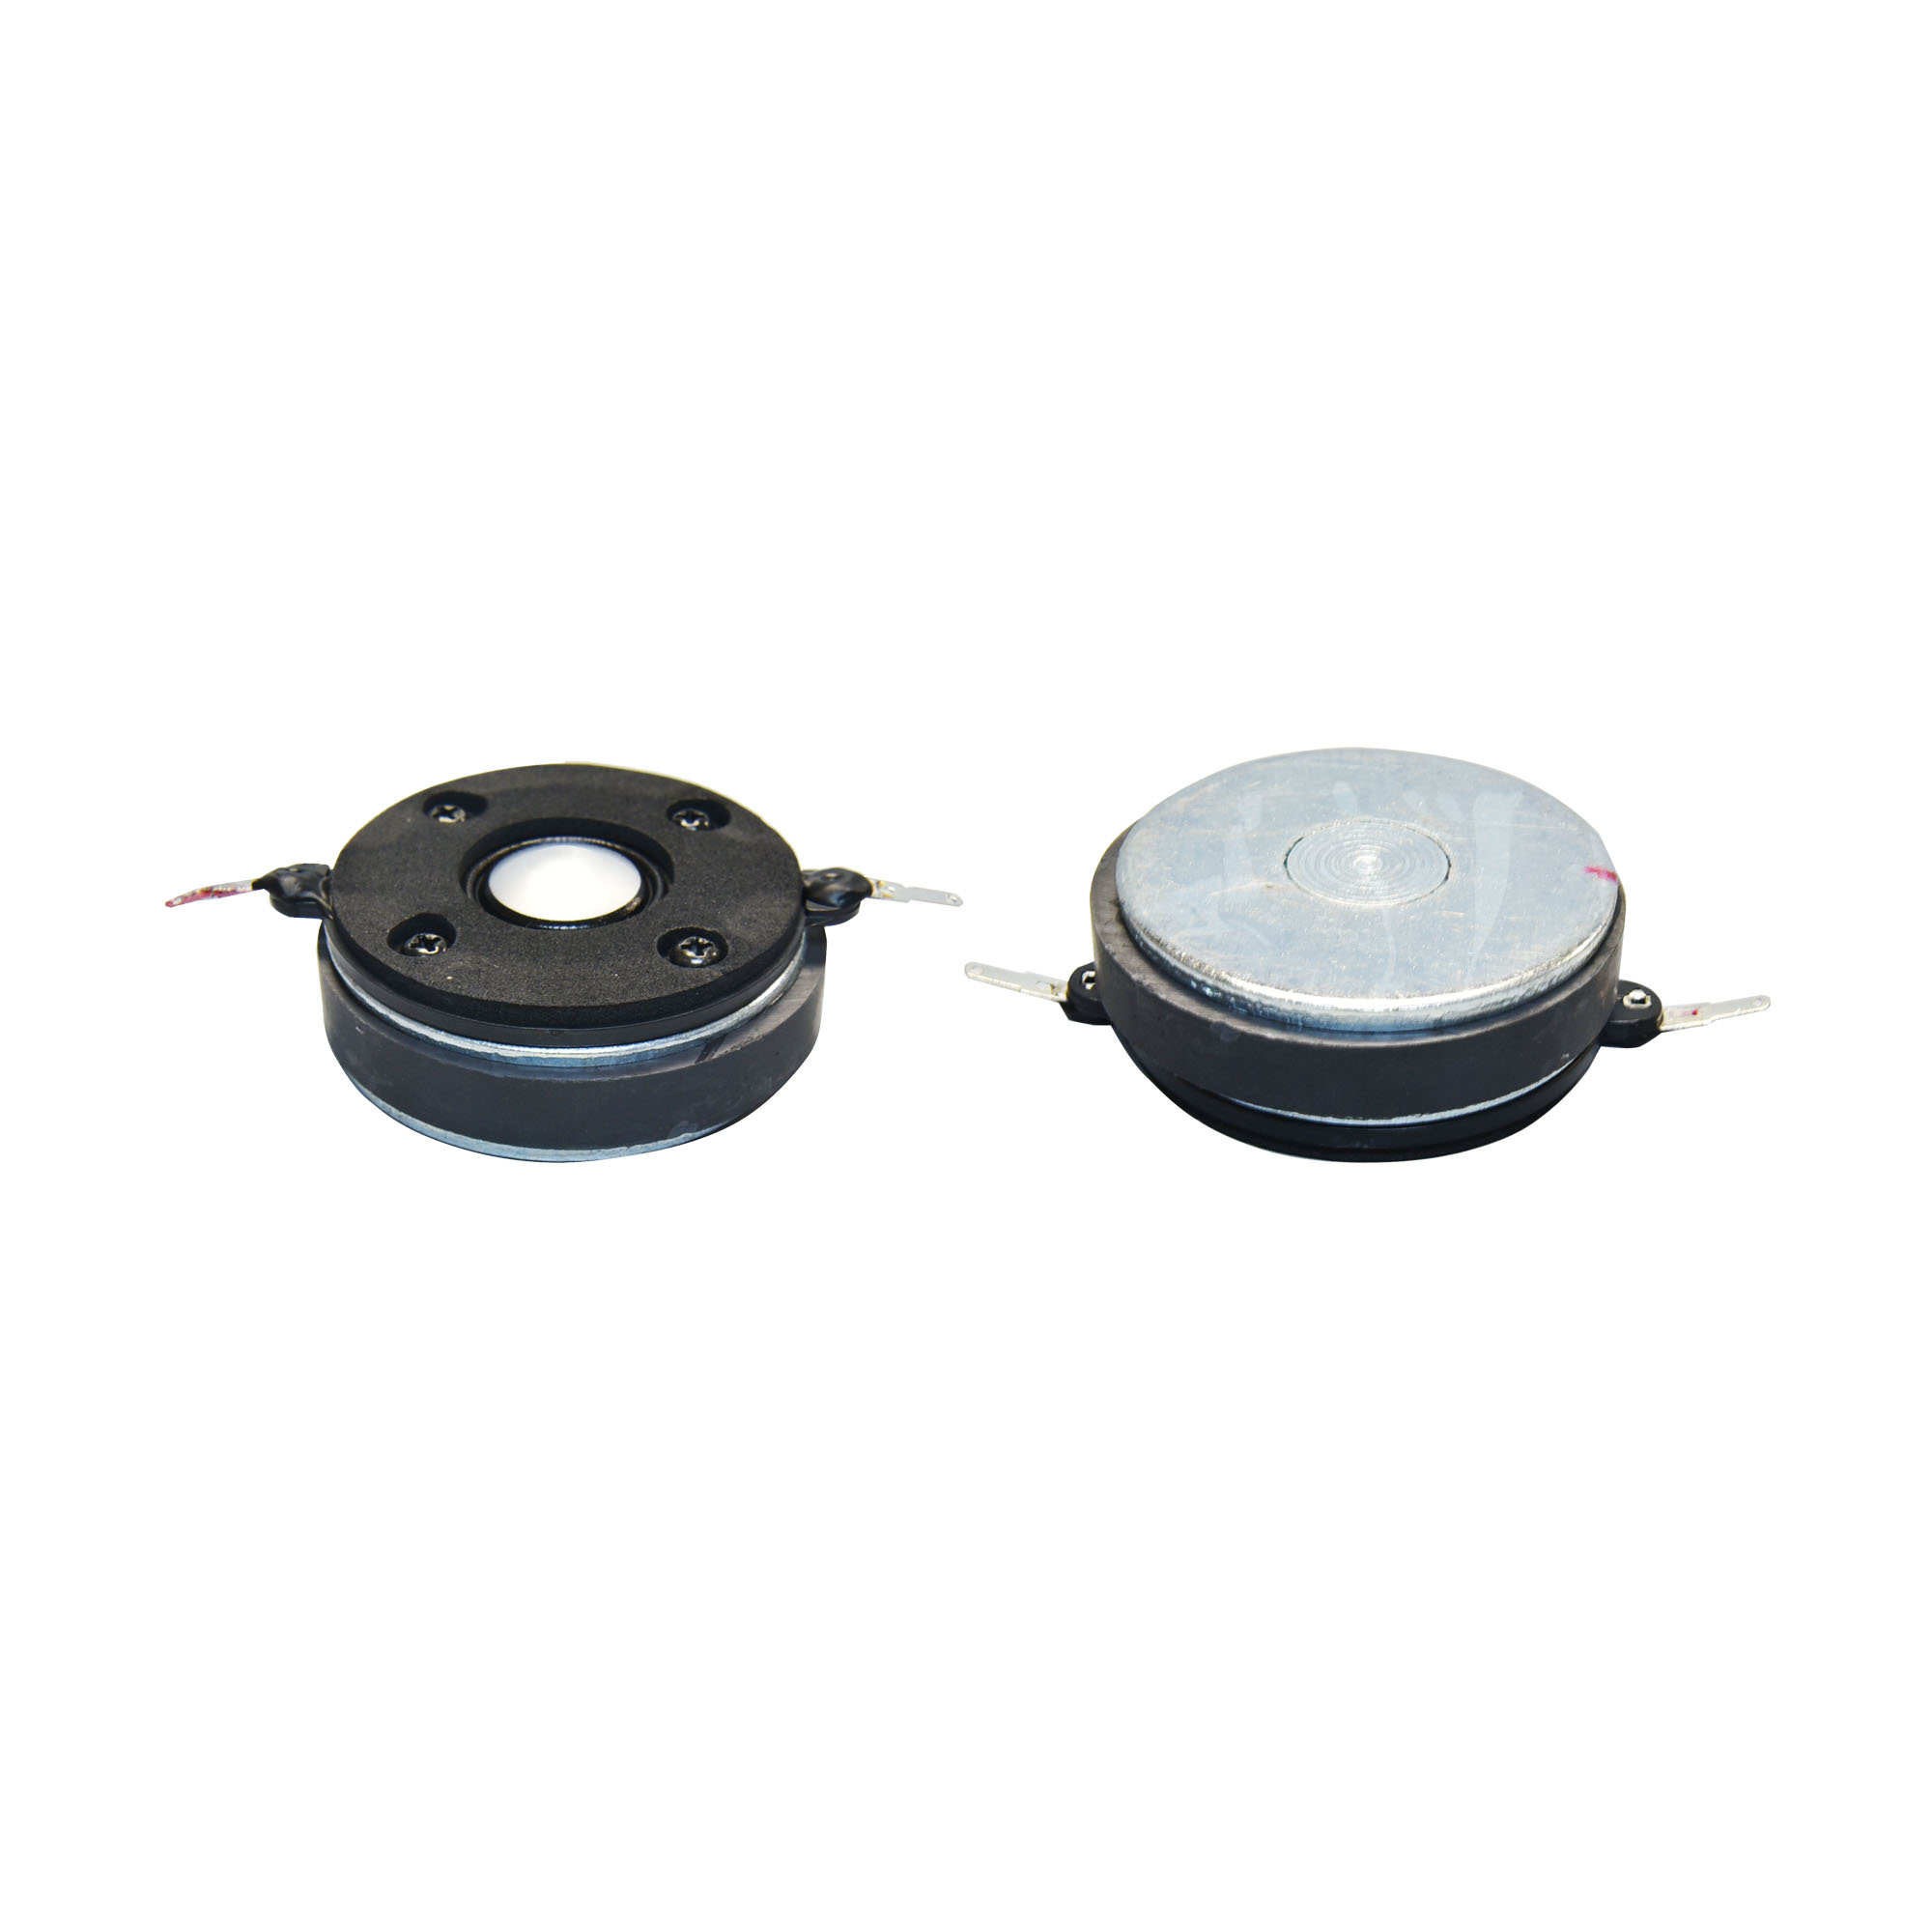 "0.75"" High Frequency Driver"